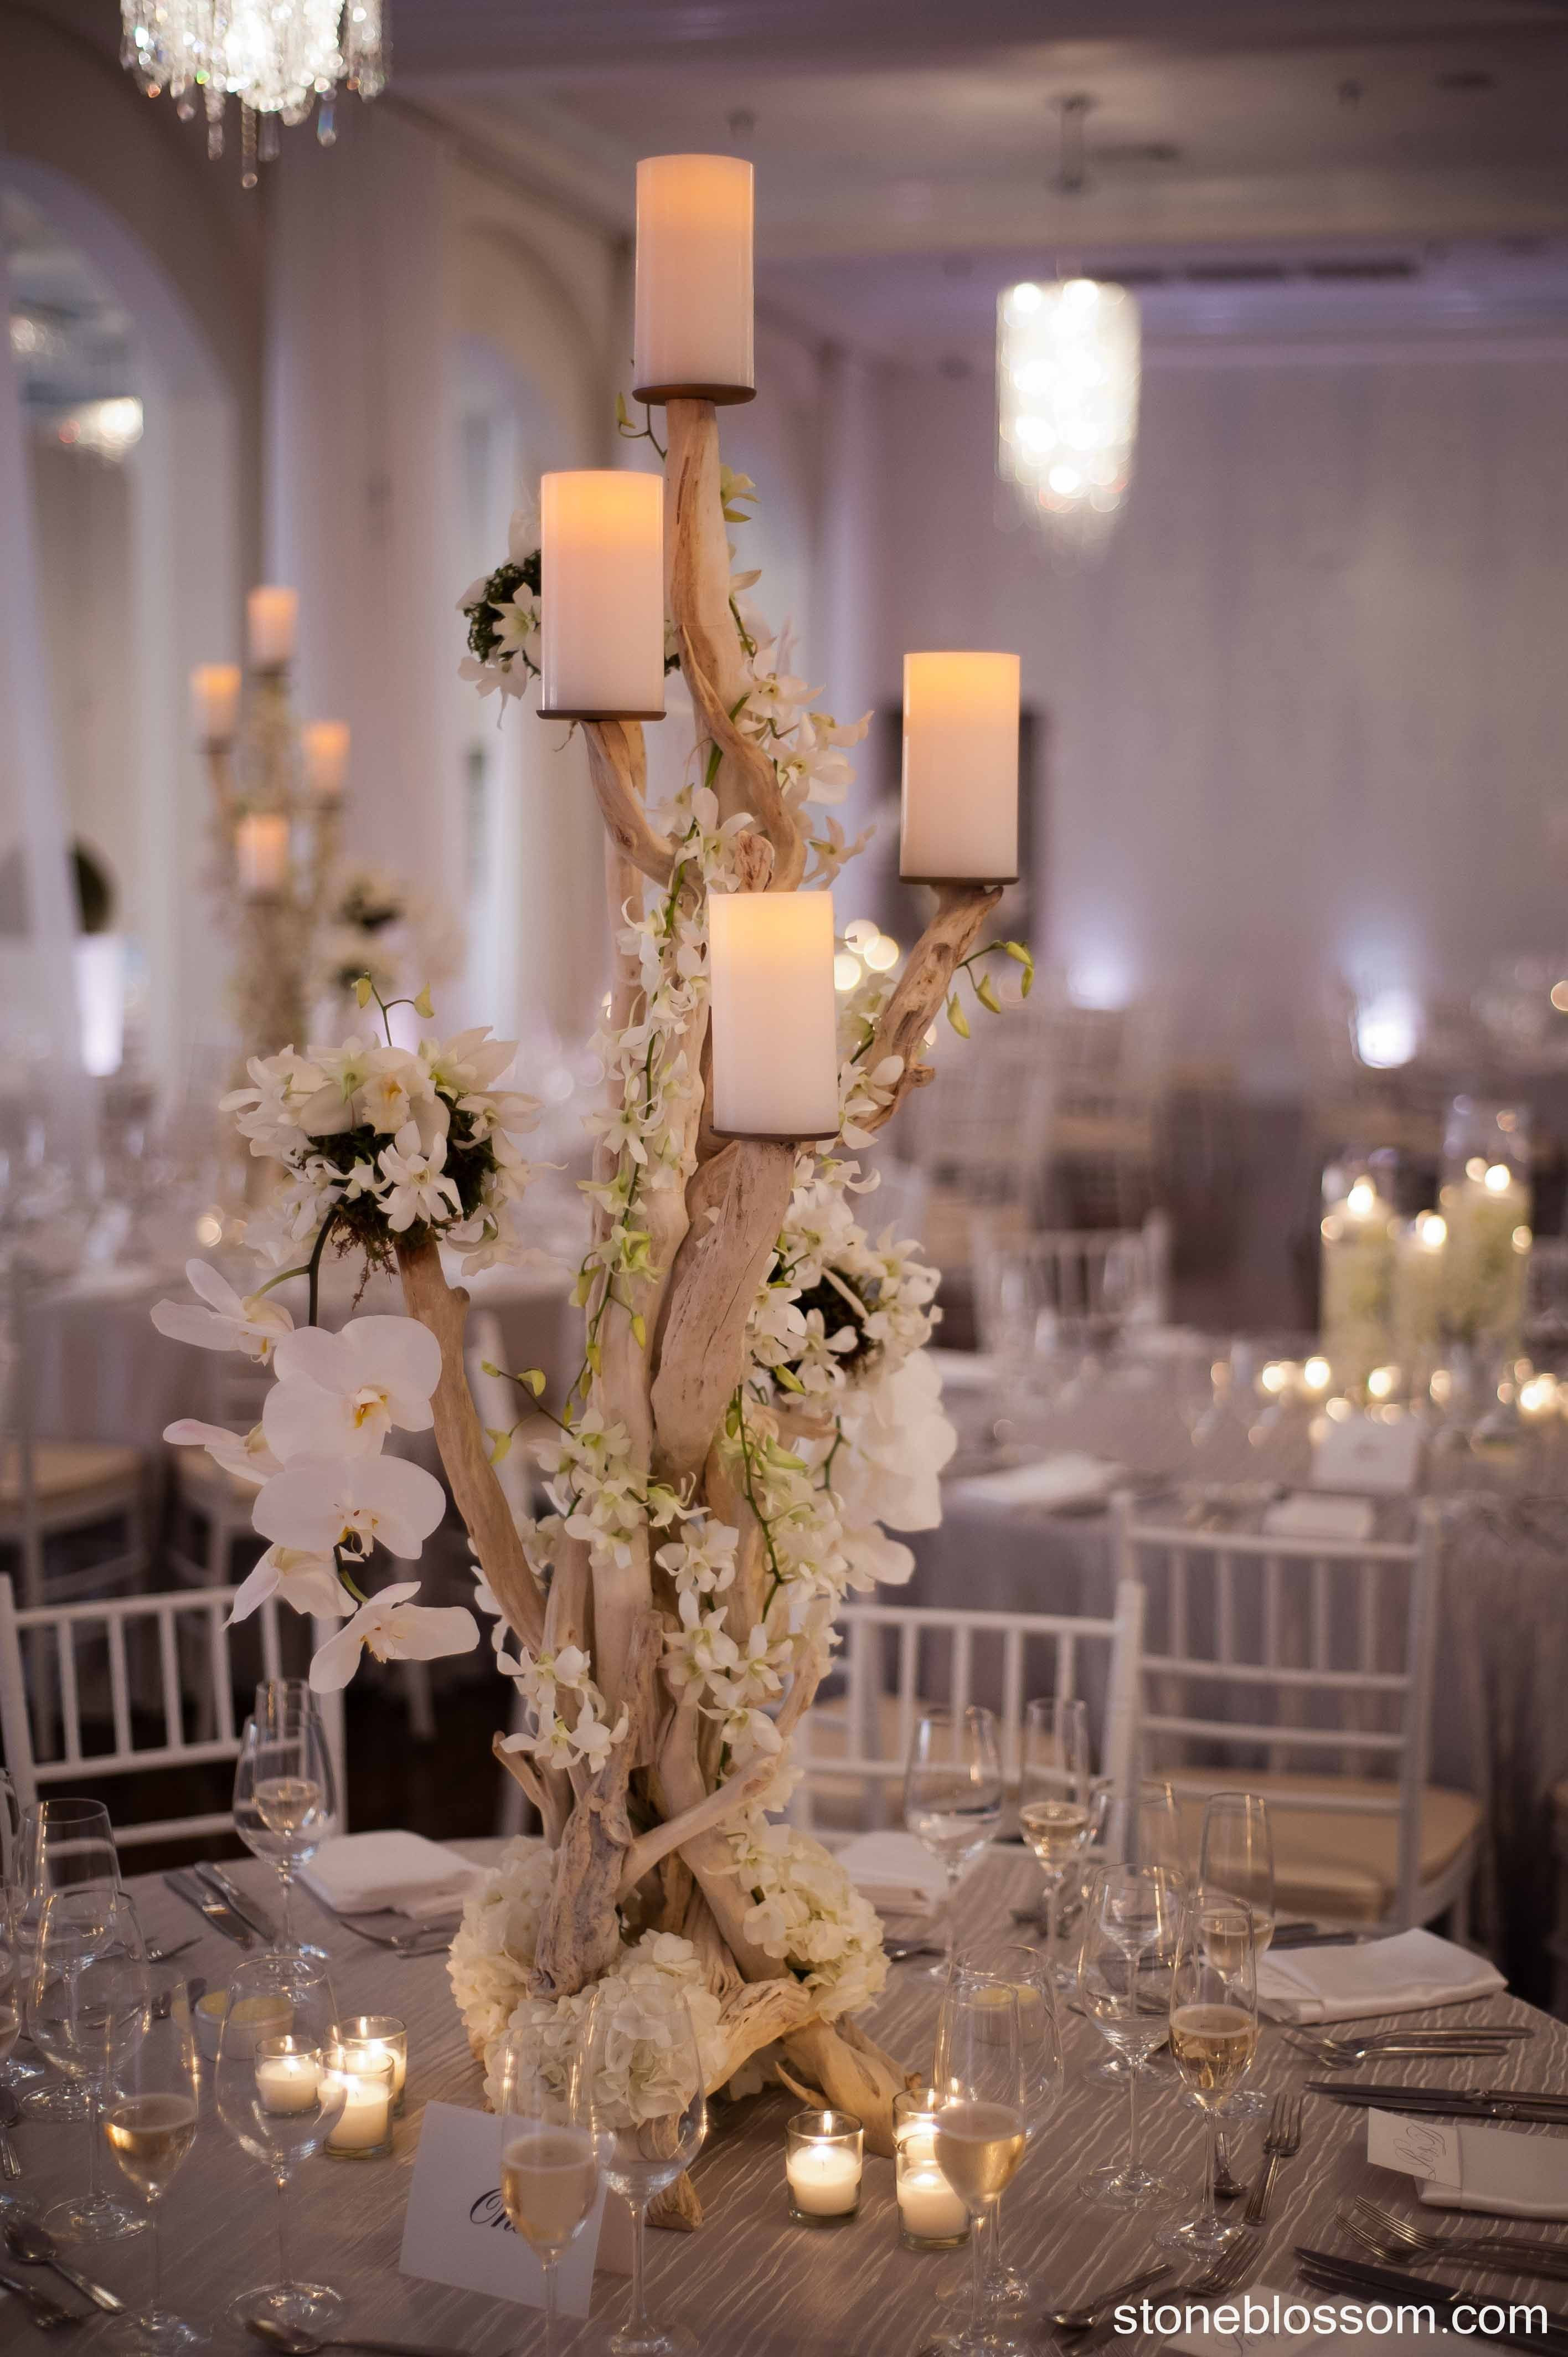 tall vase flower arrangement ideas of decorative branches for weddings awesome tall vase centerpiece ideas with decorative branches for weddings luxury floral amp event design by stoneblossom of decorative branches for weddings